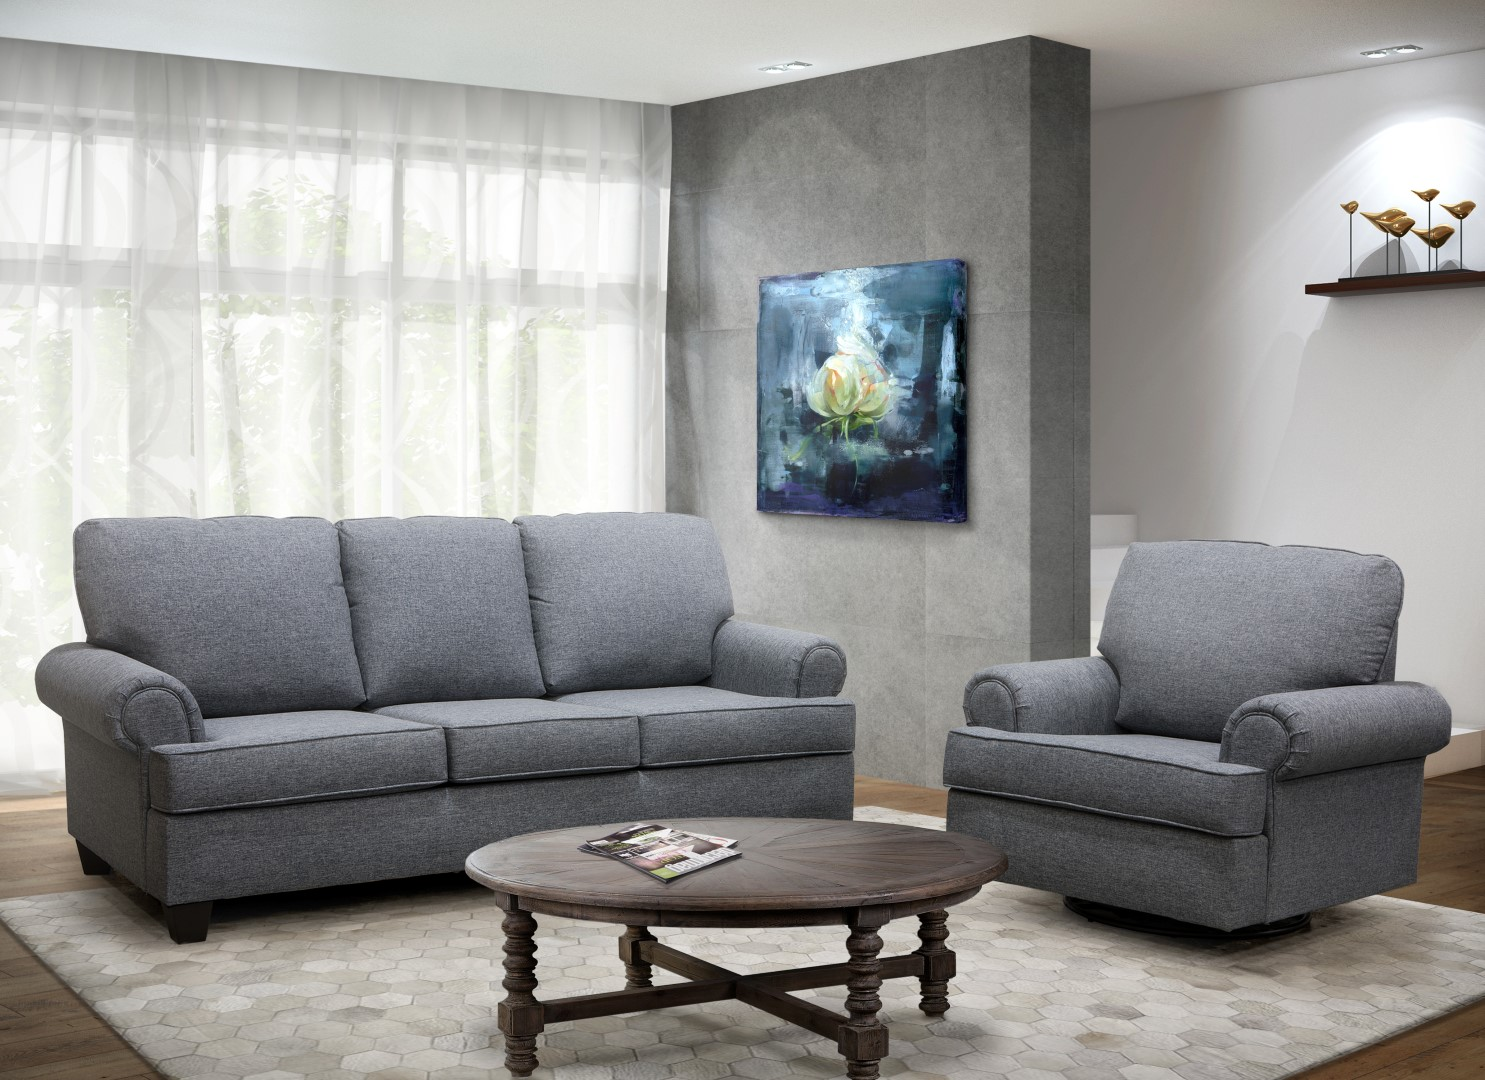 Londres 21793 Sofa Set made in Canada